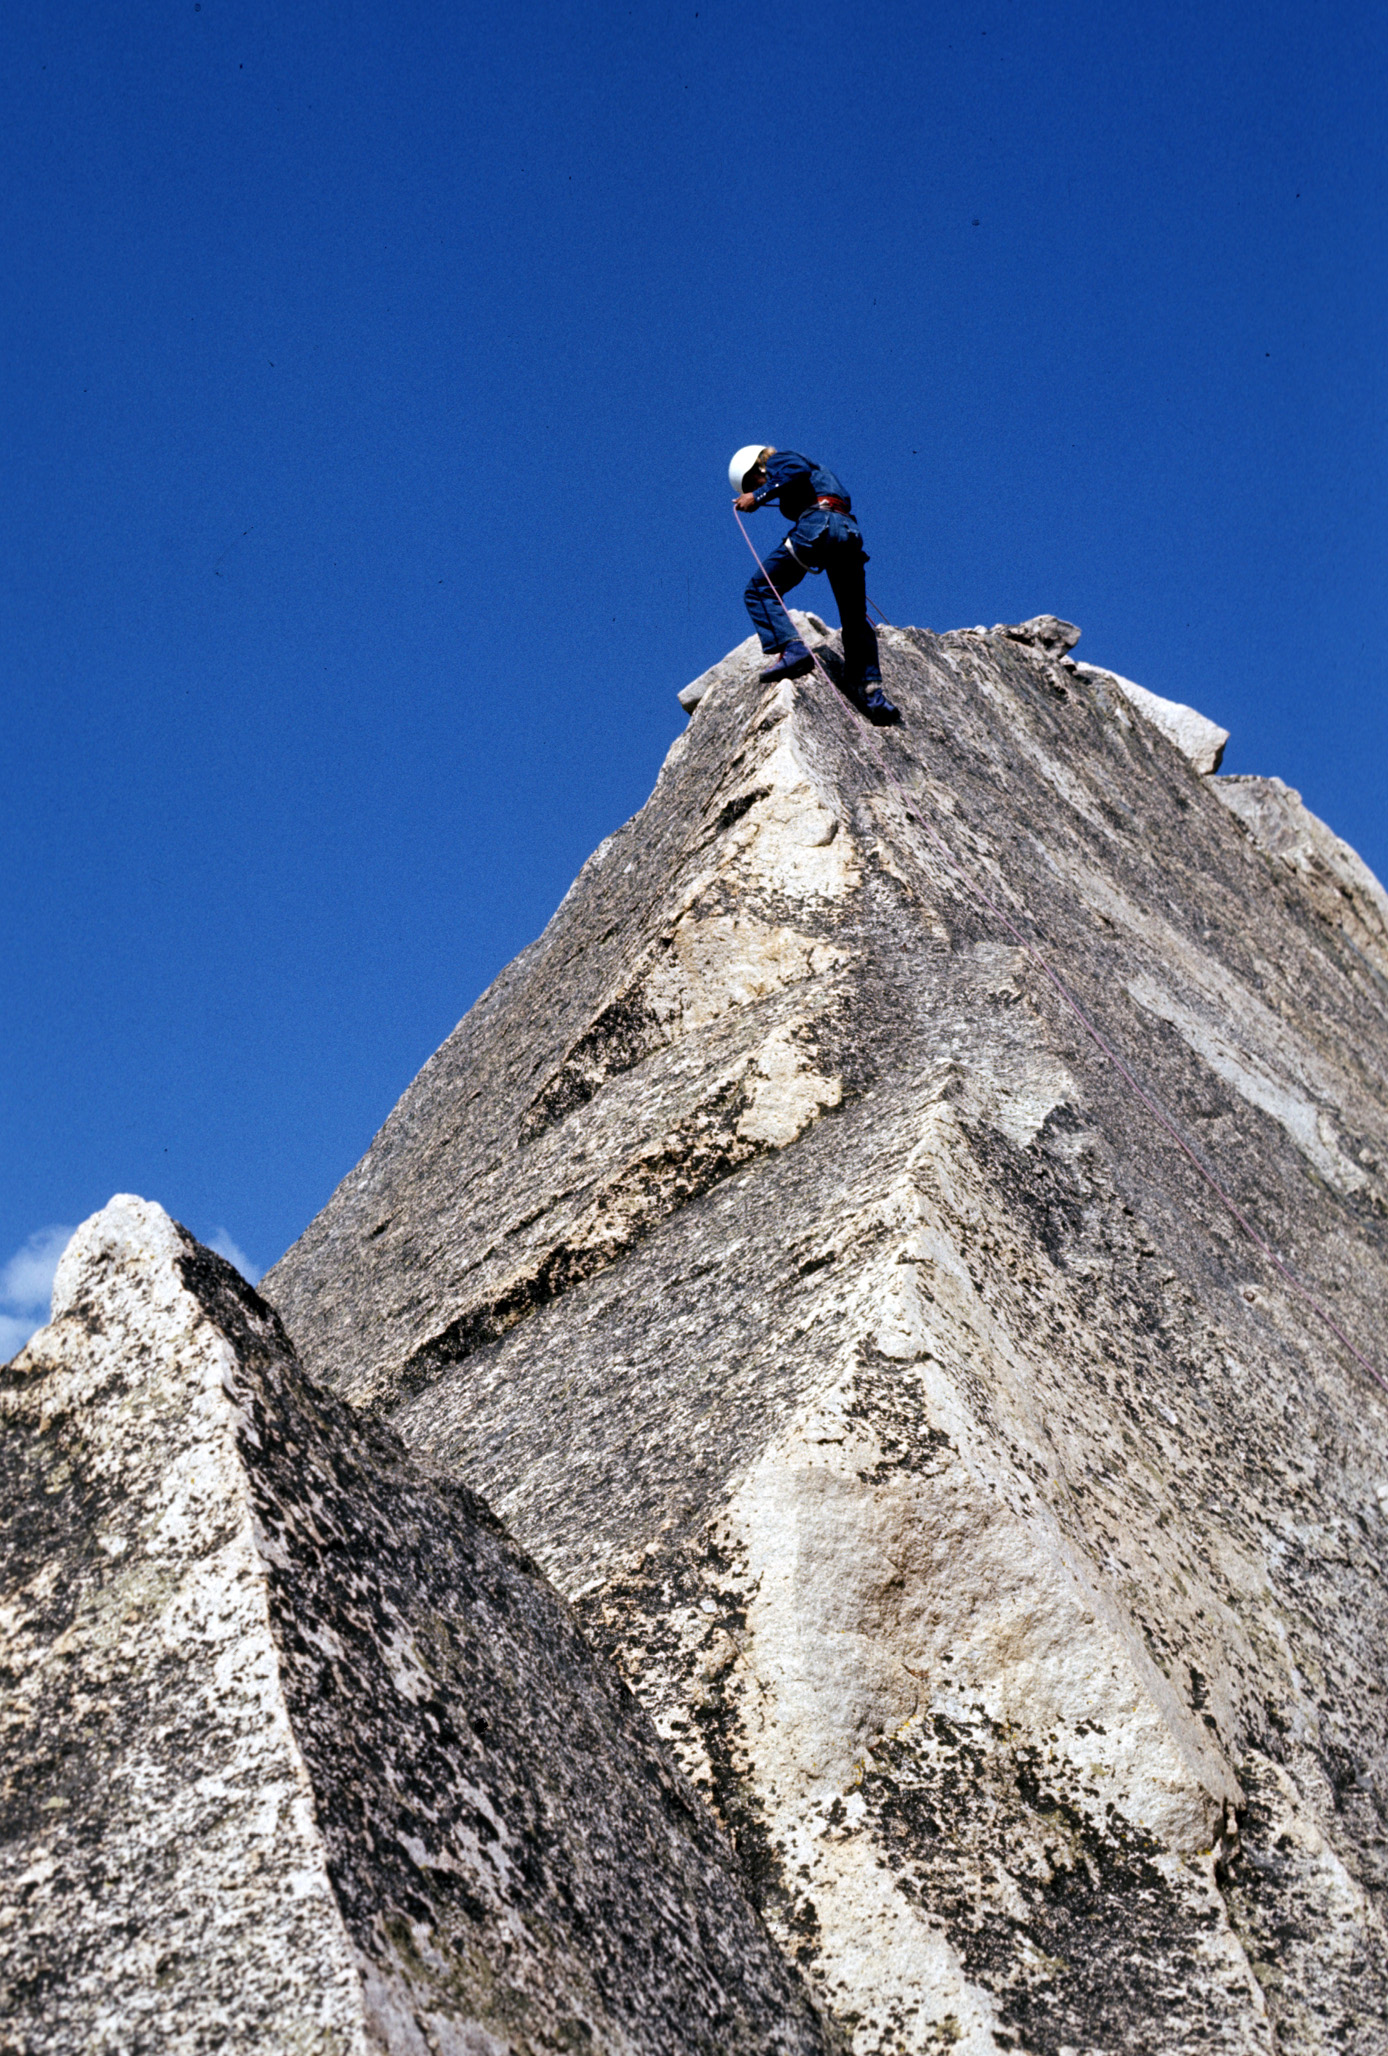 David Thomas rappelling off the summit of Warbonnet, 1972.